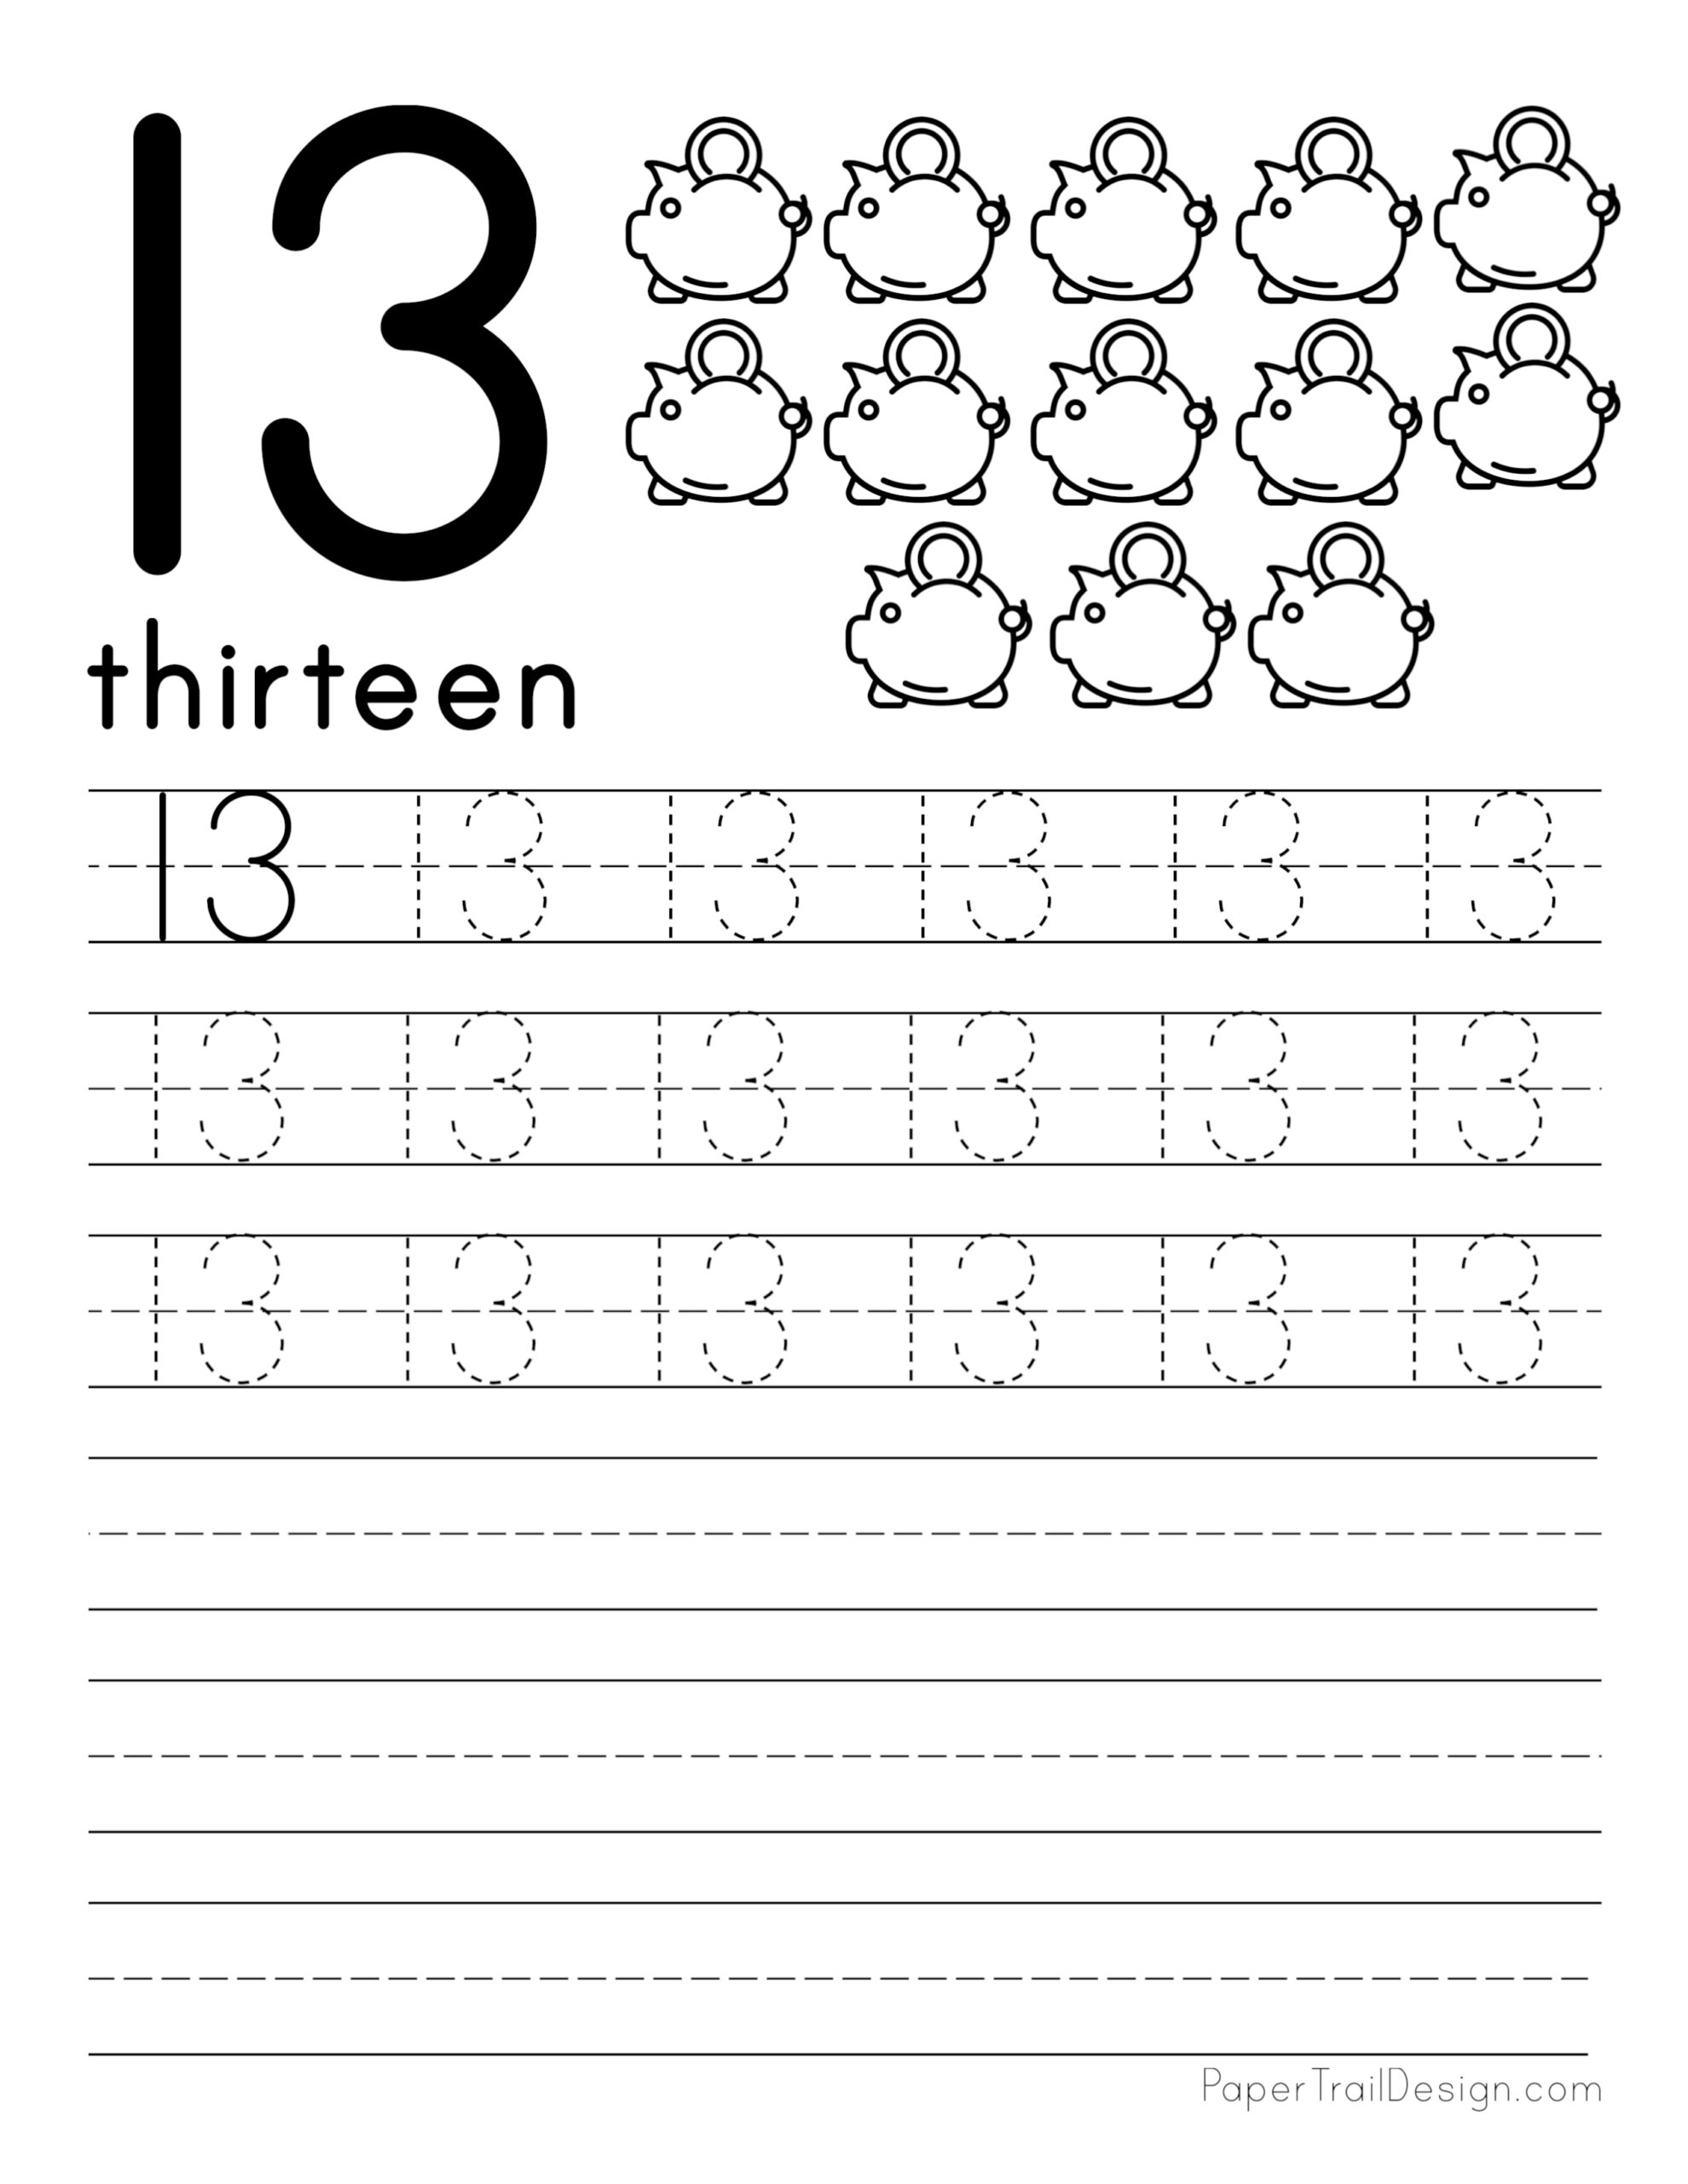 Free Number Tracing Worksheets Paper Trail Design